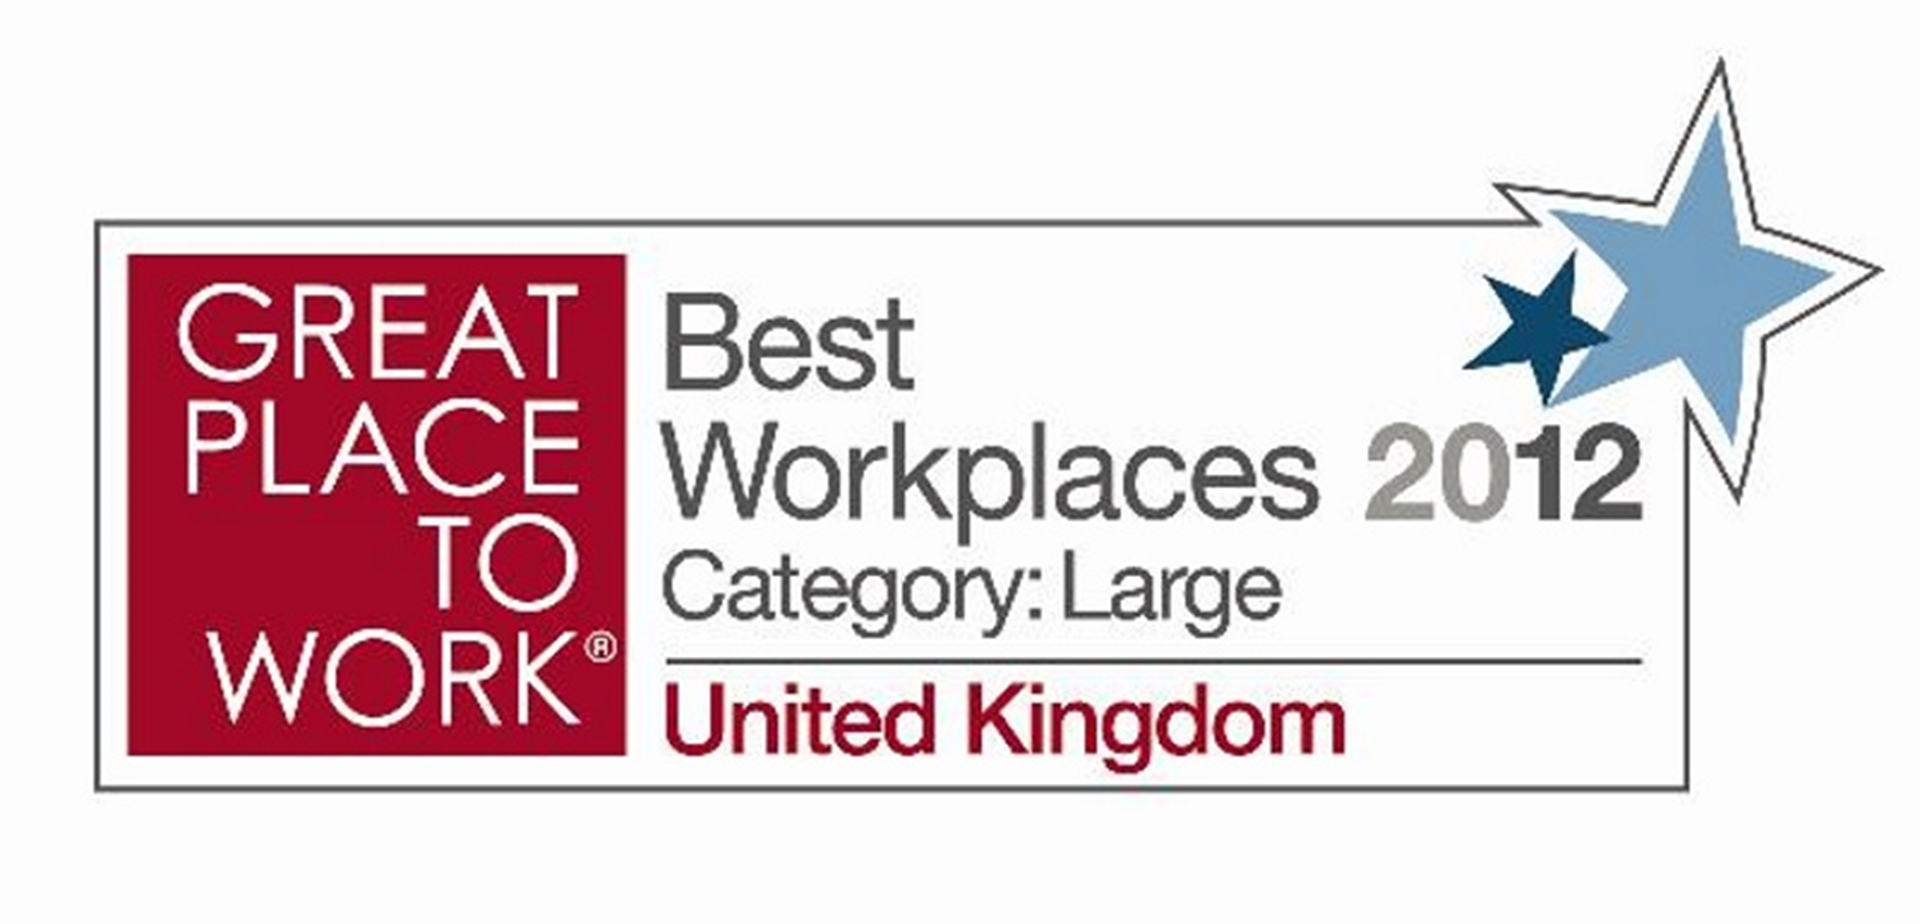 Volkswagen best workplaces